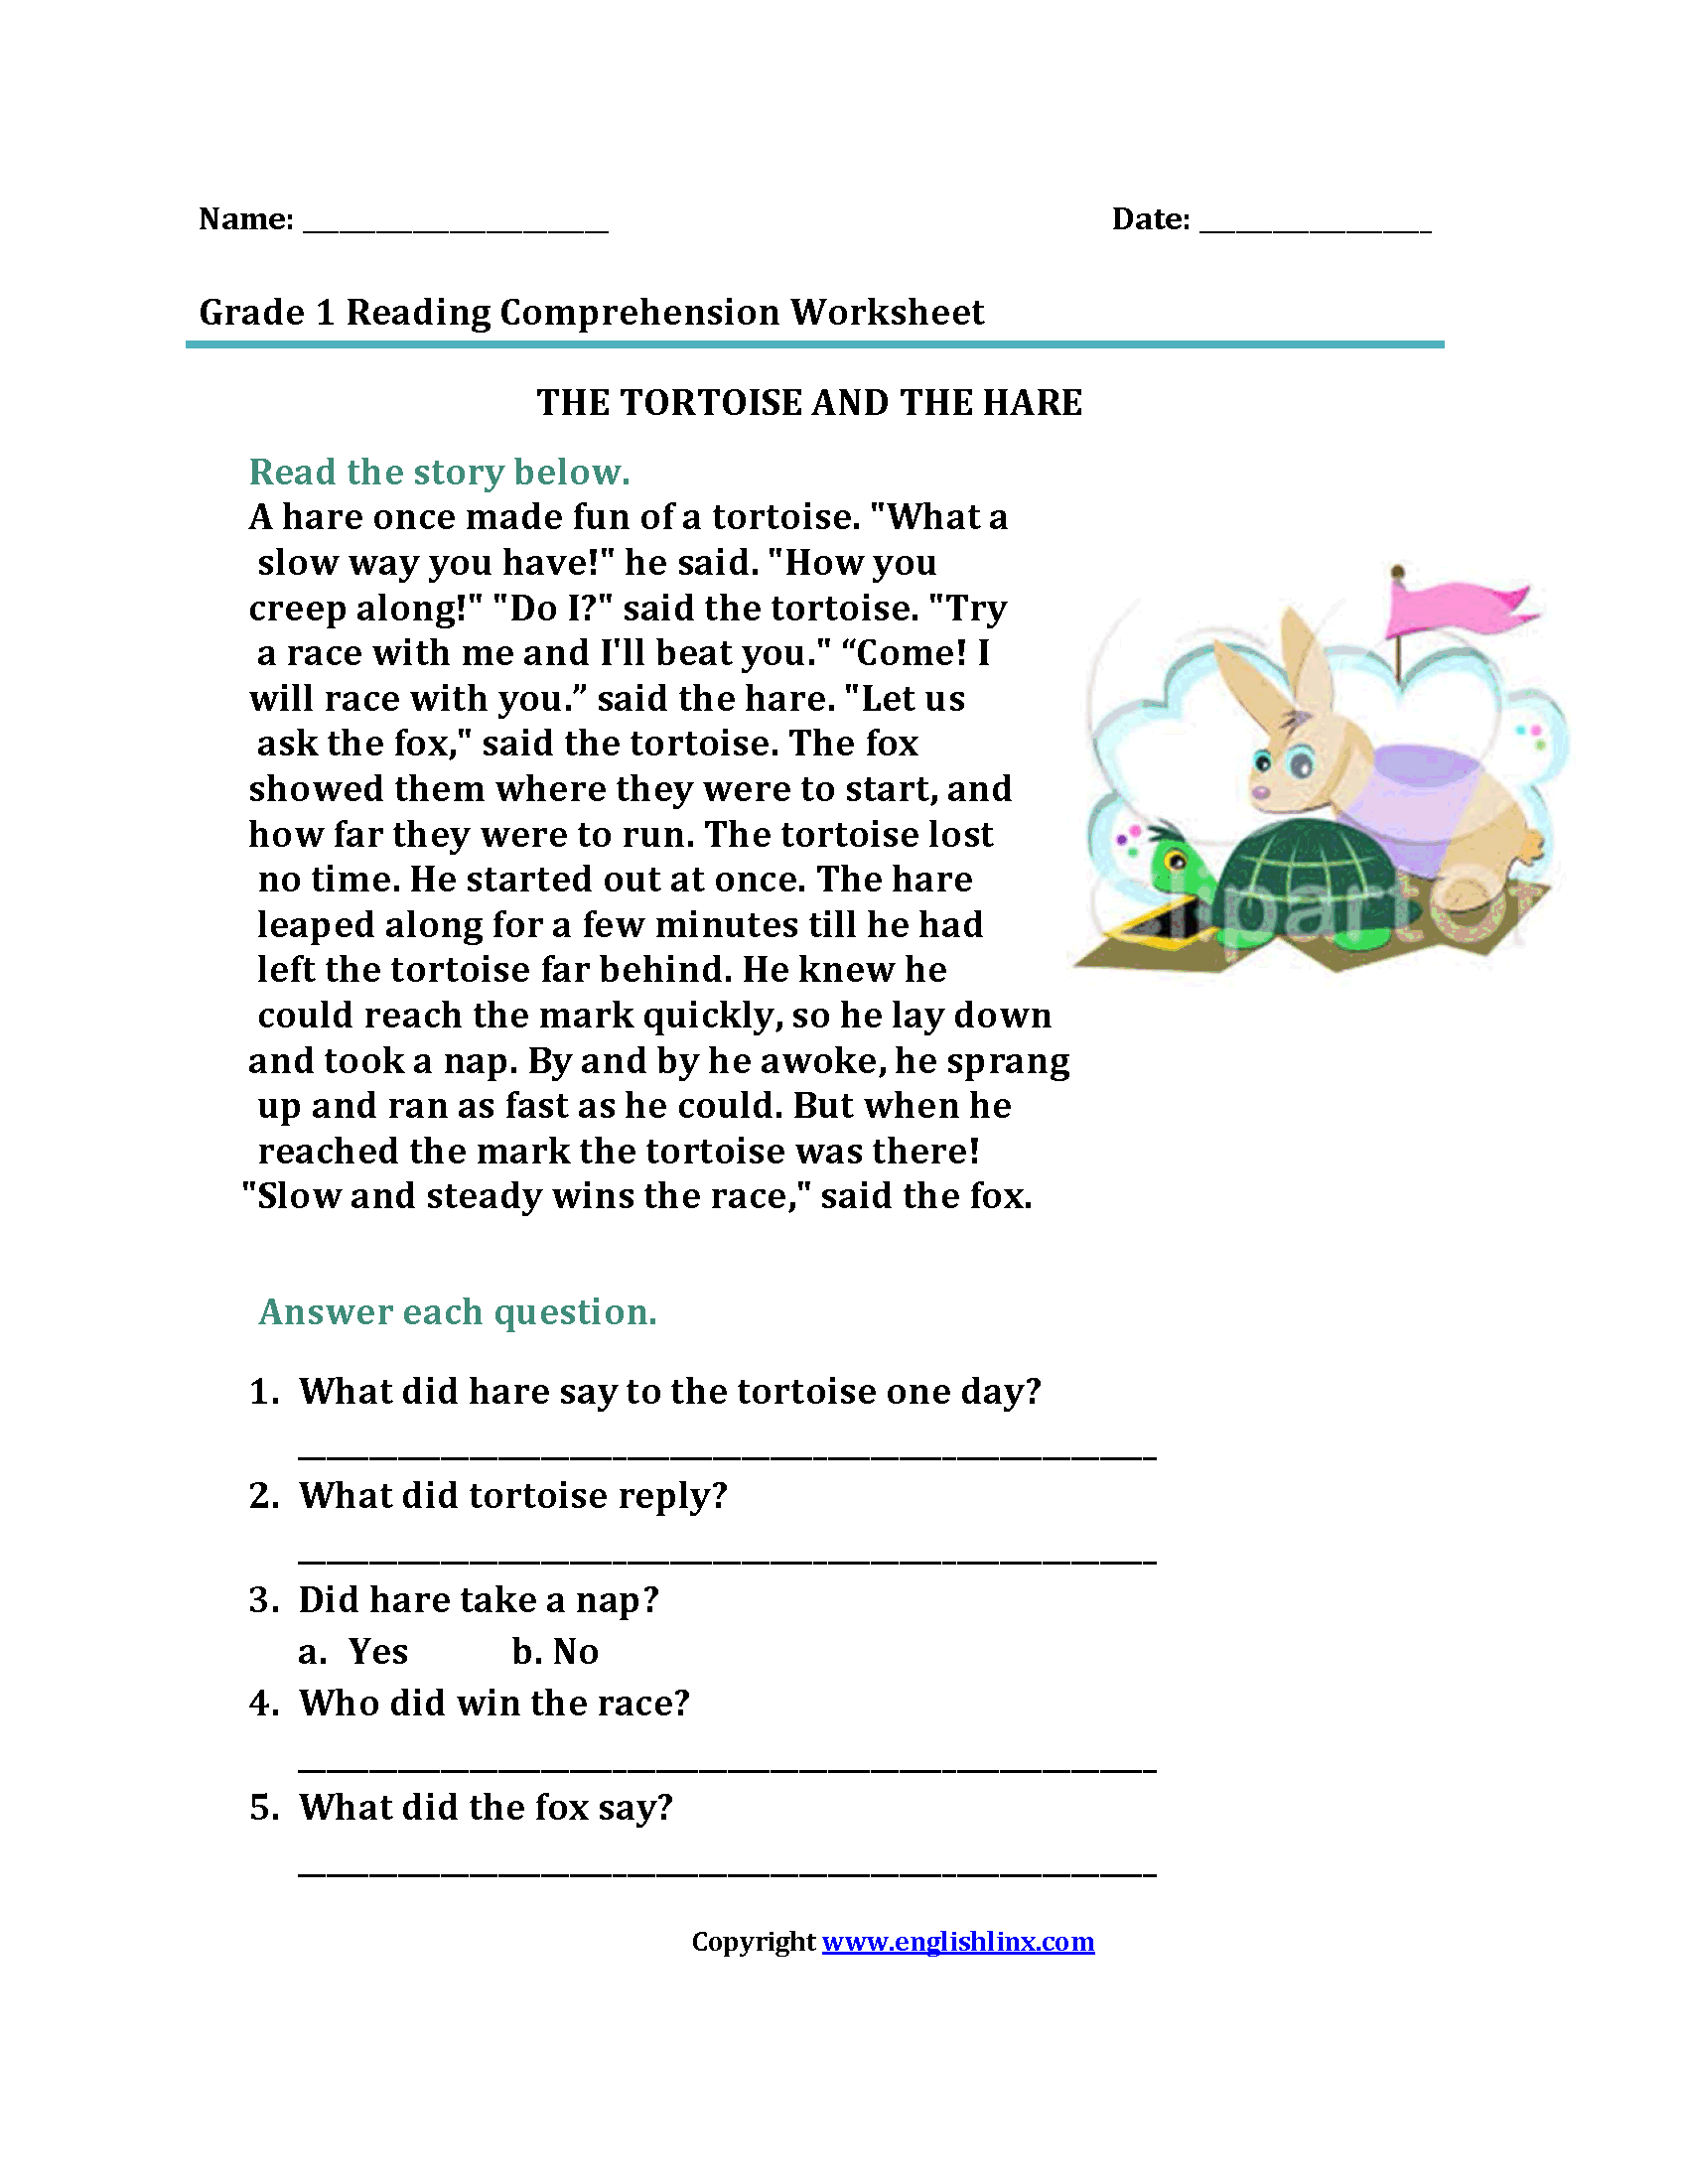 Tortoise And The Hare Br First Grade Reading Worksheets First Grade Reading 1st Grade Reading Worksheets Reading Worksheets [ 2200 x 1700 Pixel ]